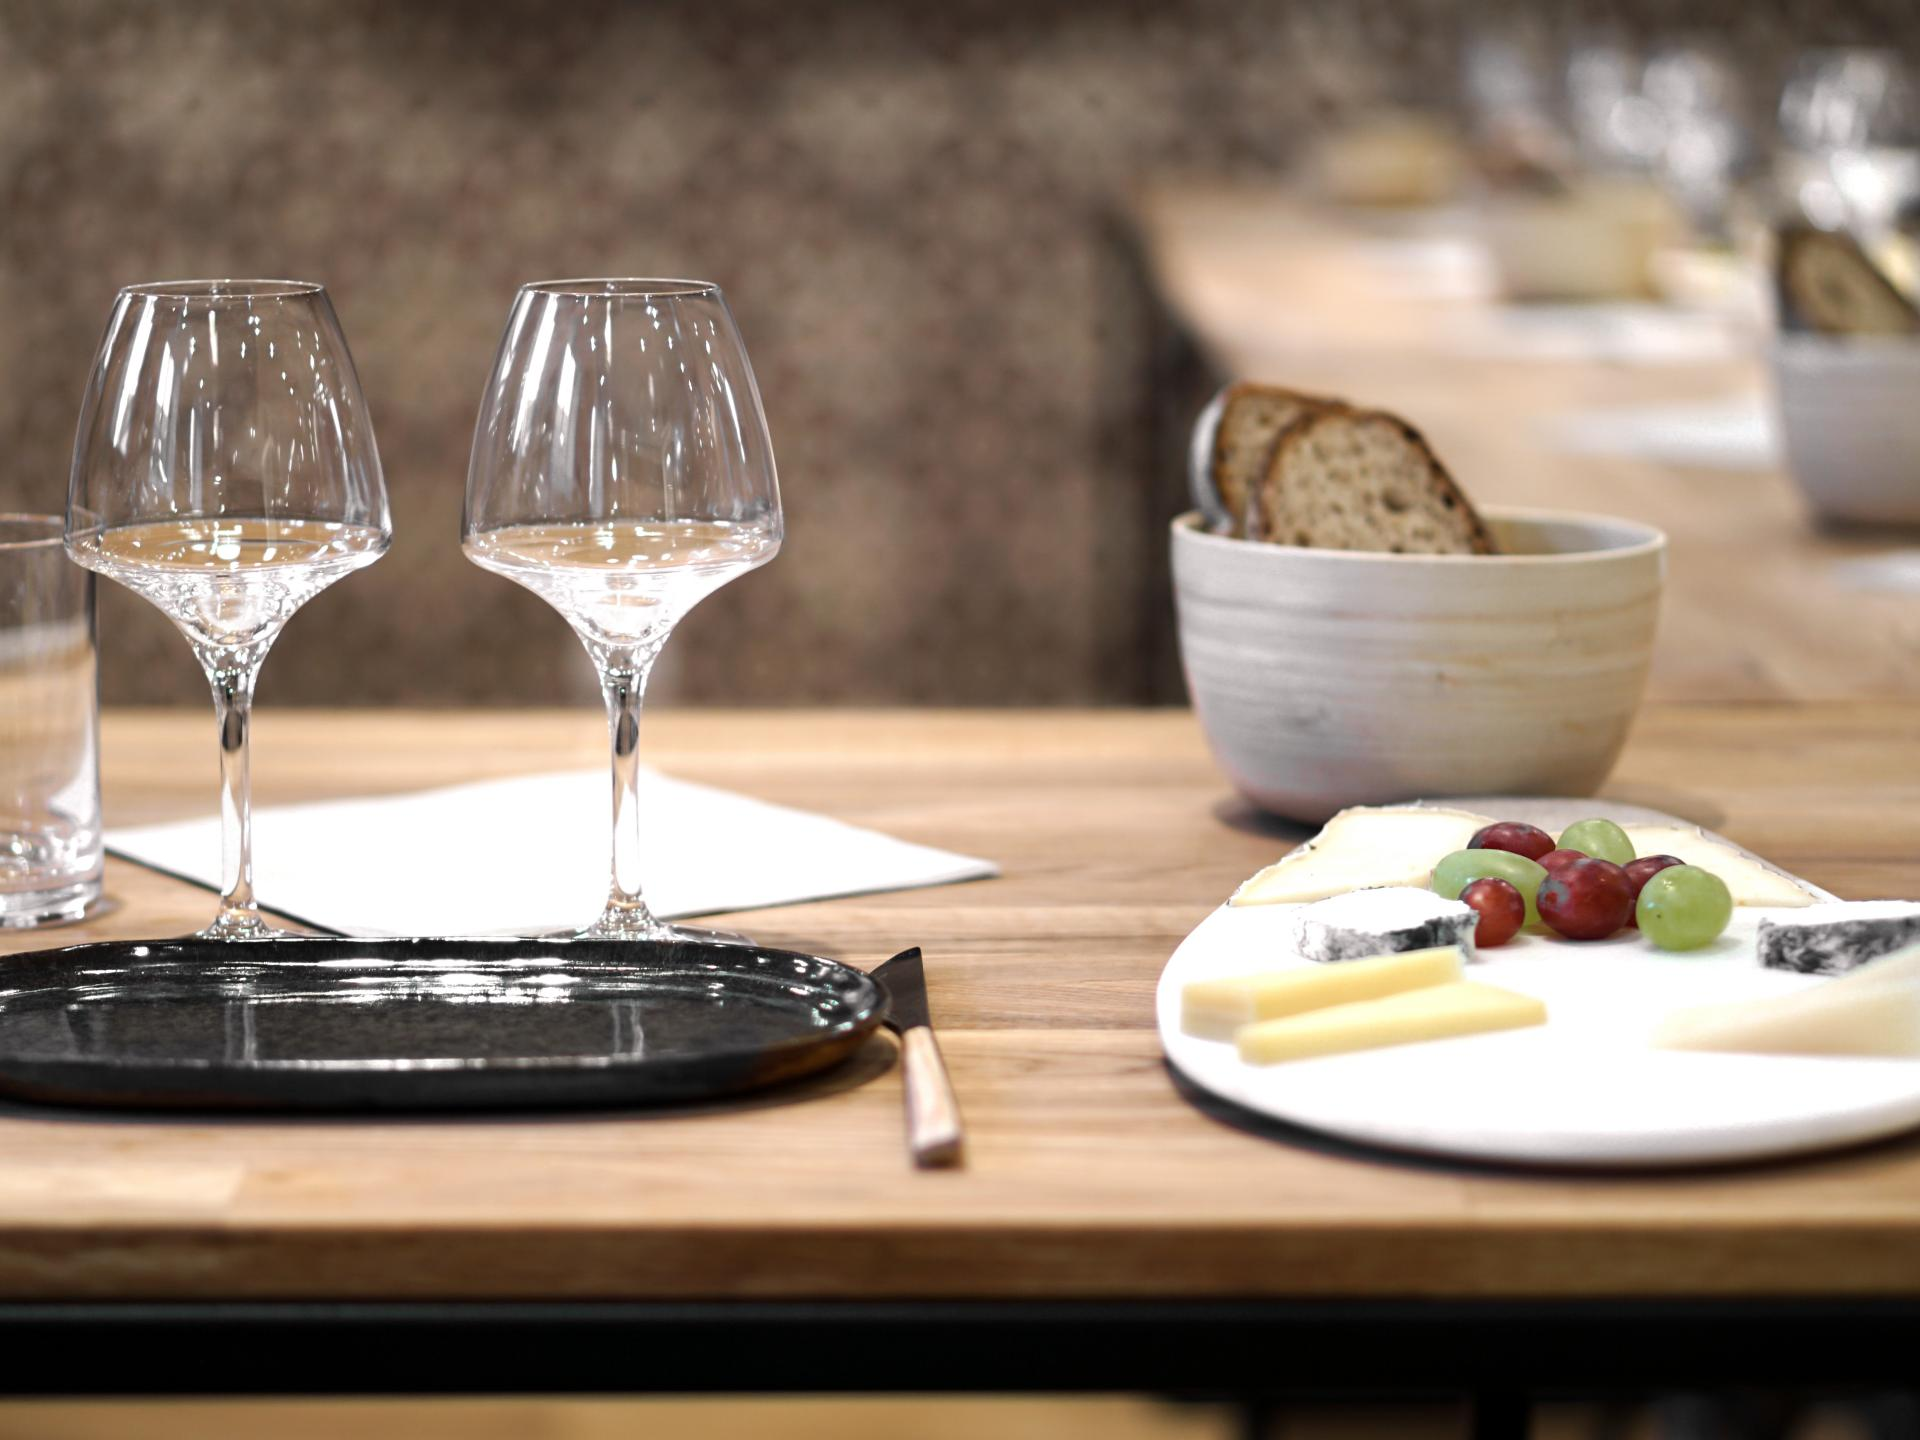 wine and cheese pairing at galeries lafayette